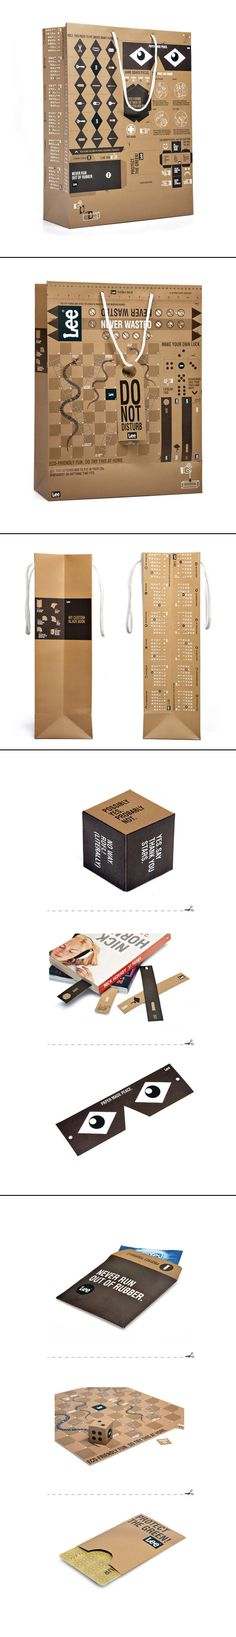 Lee Never Wasted #packaging #paper #bag